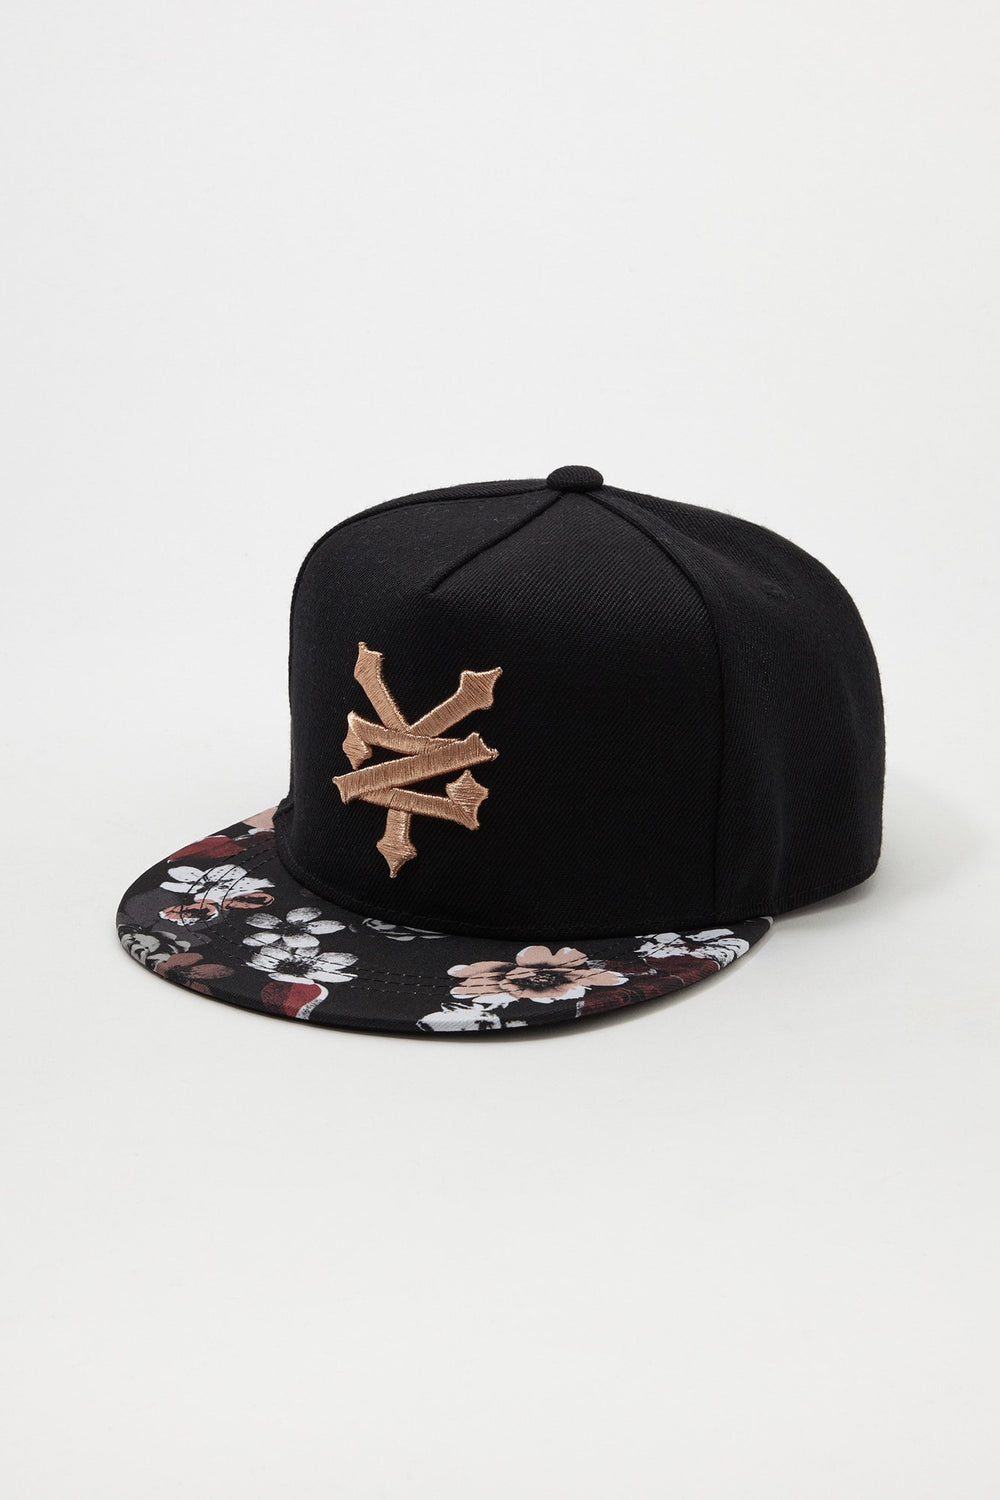 Zoo York Floral Snapback Hat Multi